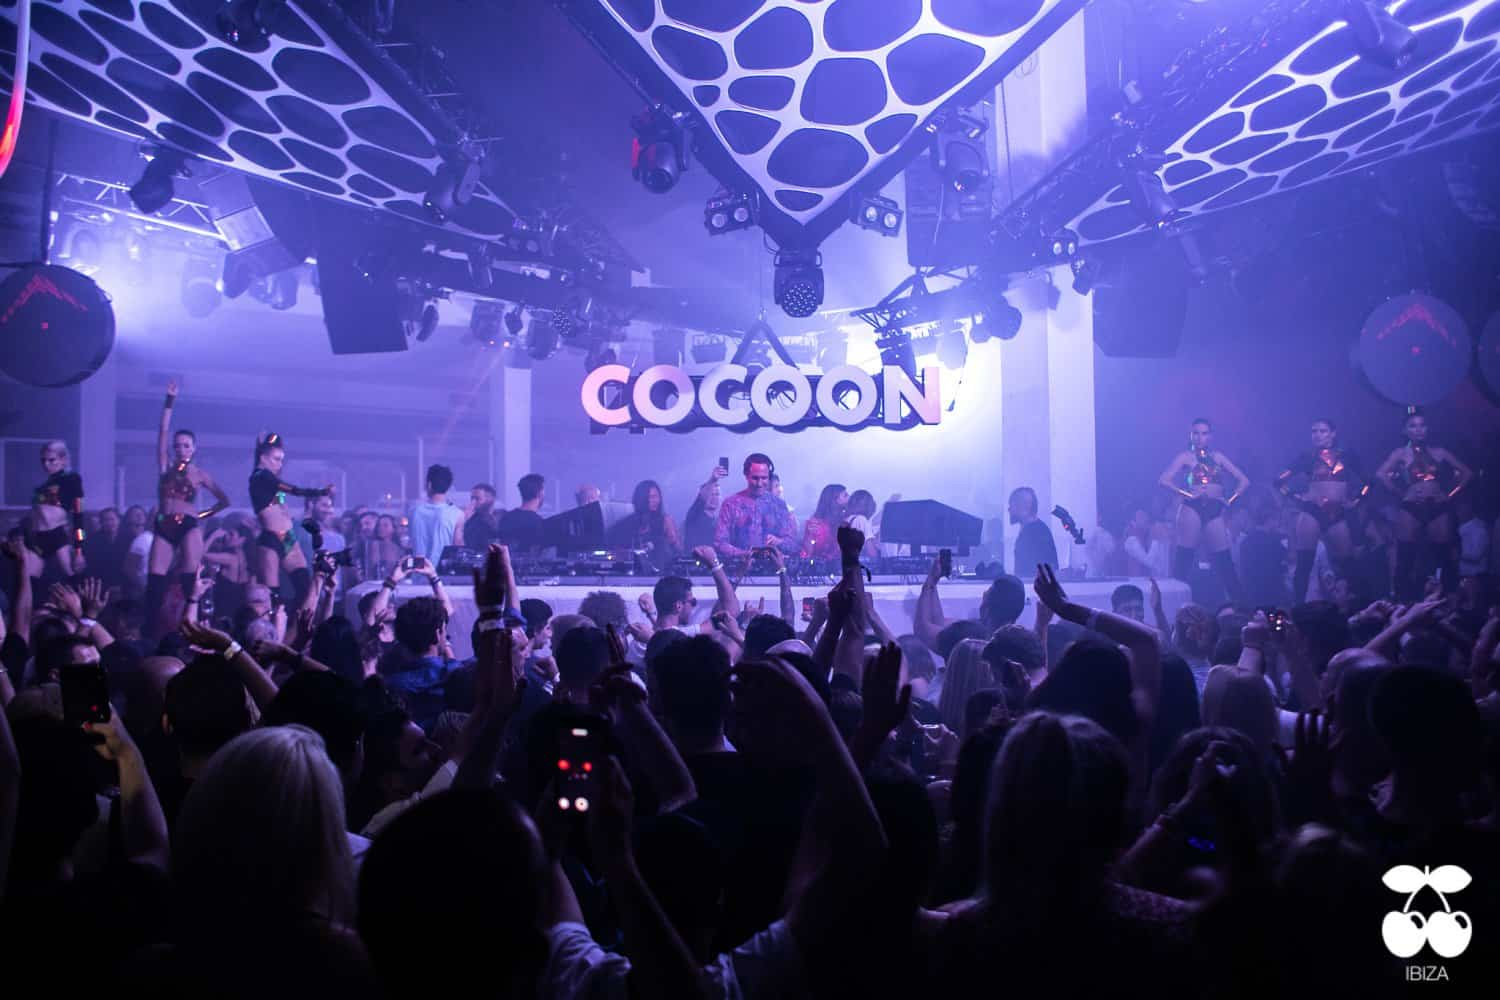 Cocoon Ibiza 2019 - Tickets, Events and Lineup 3